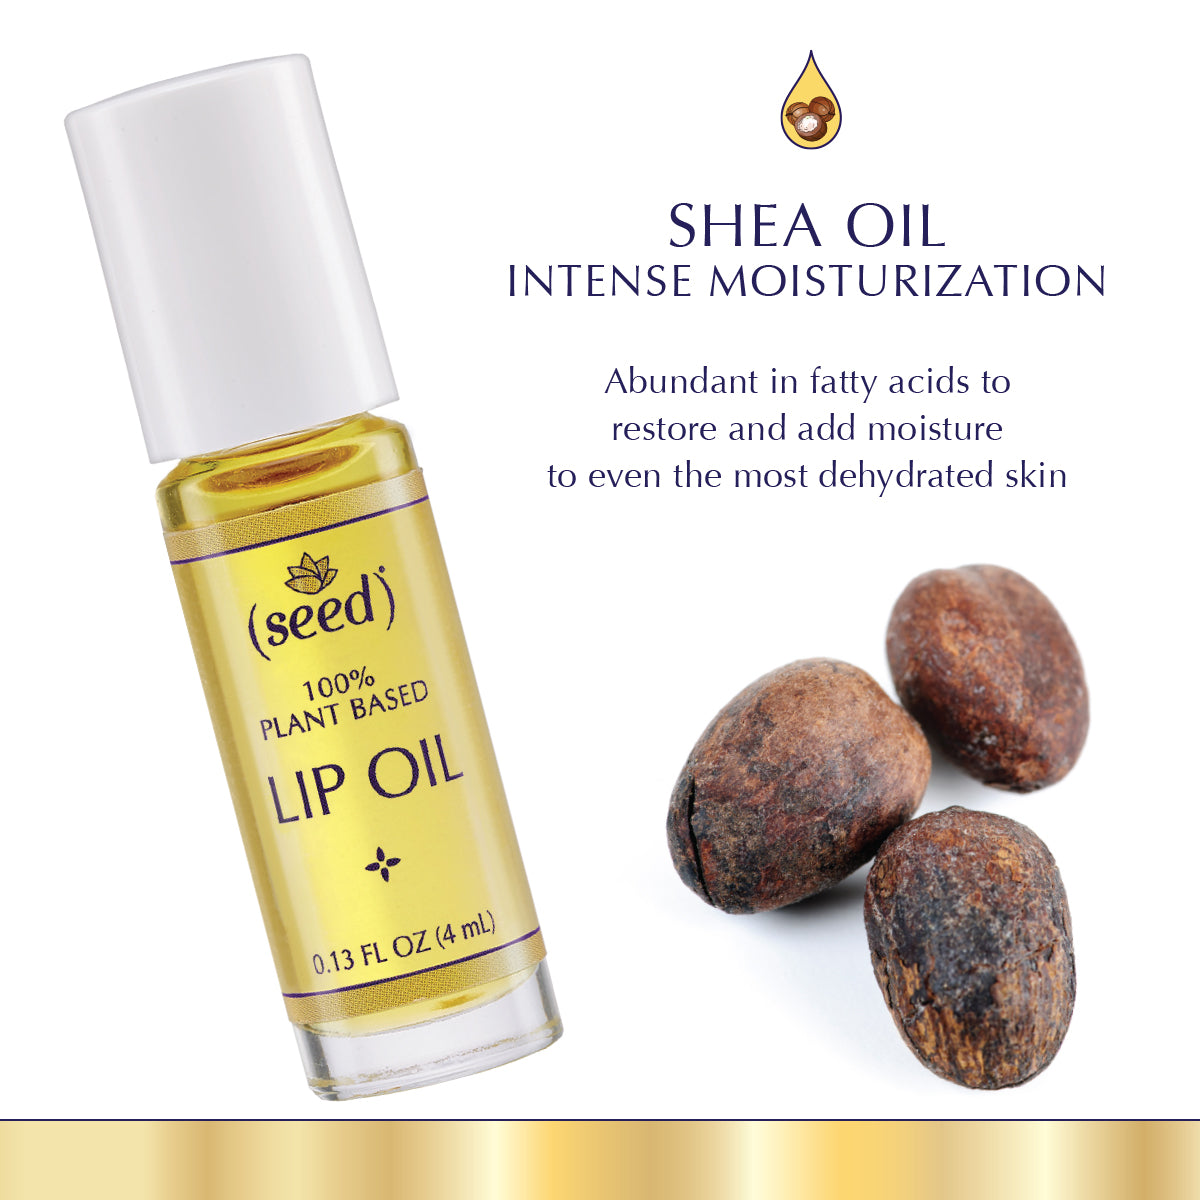 Seed Lip Oil features shea oil for intensive moisturization